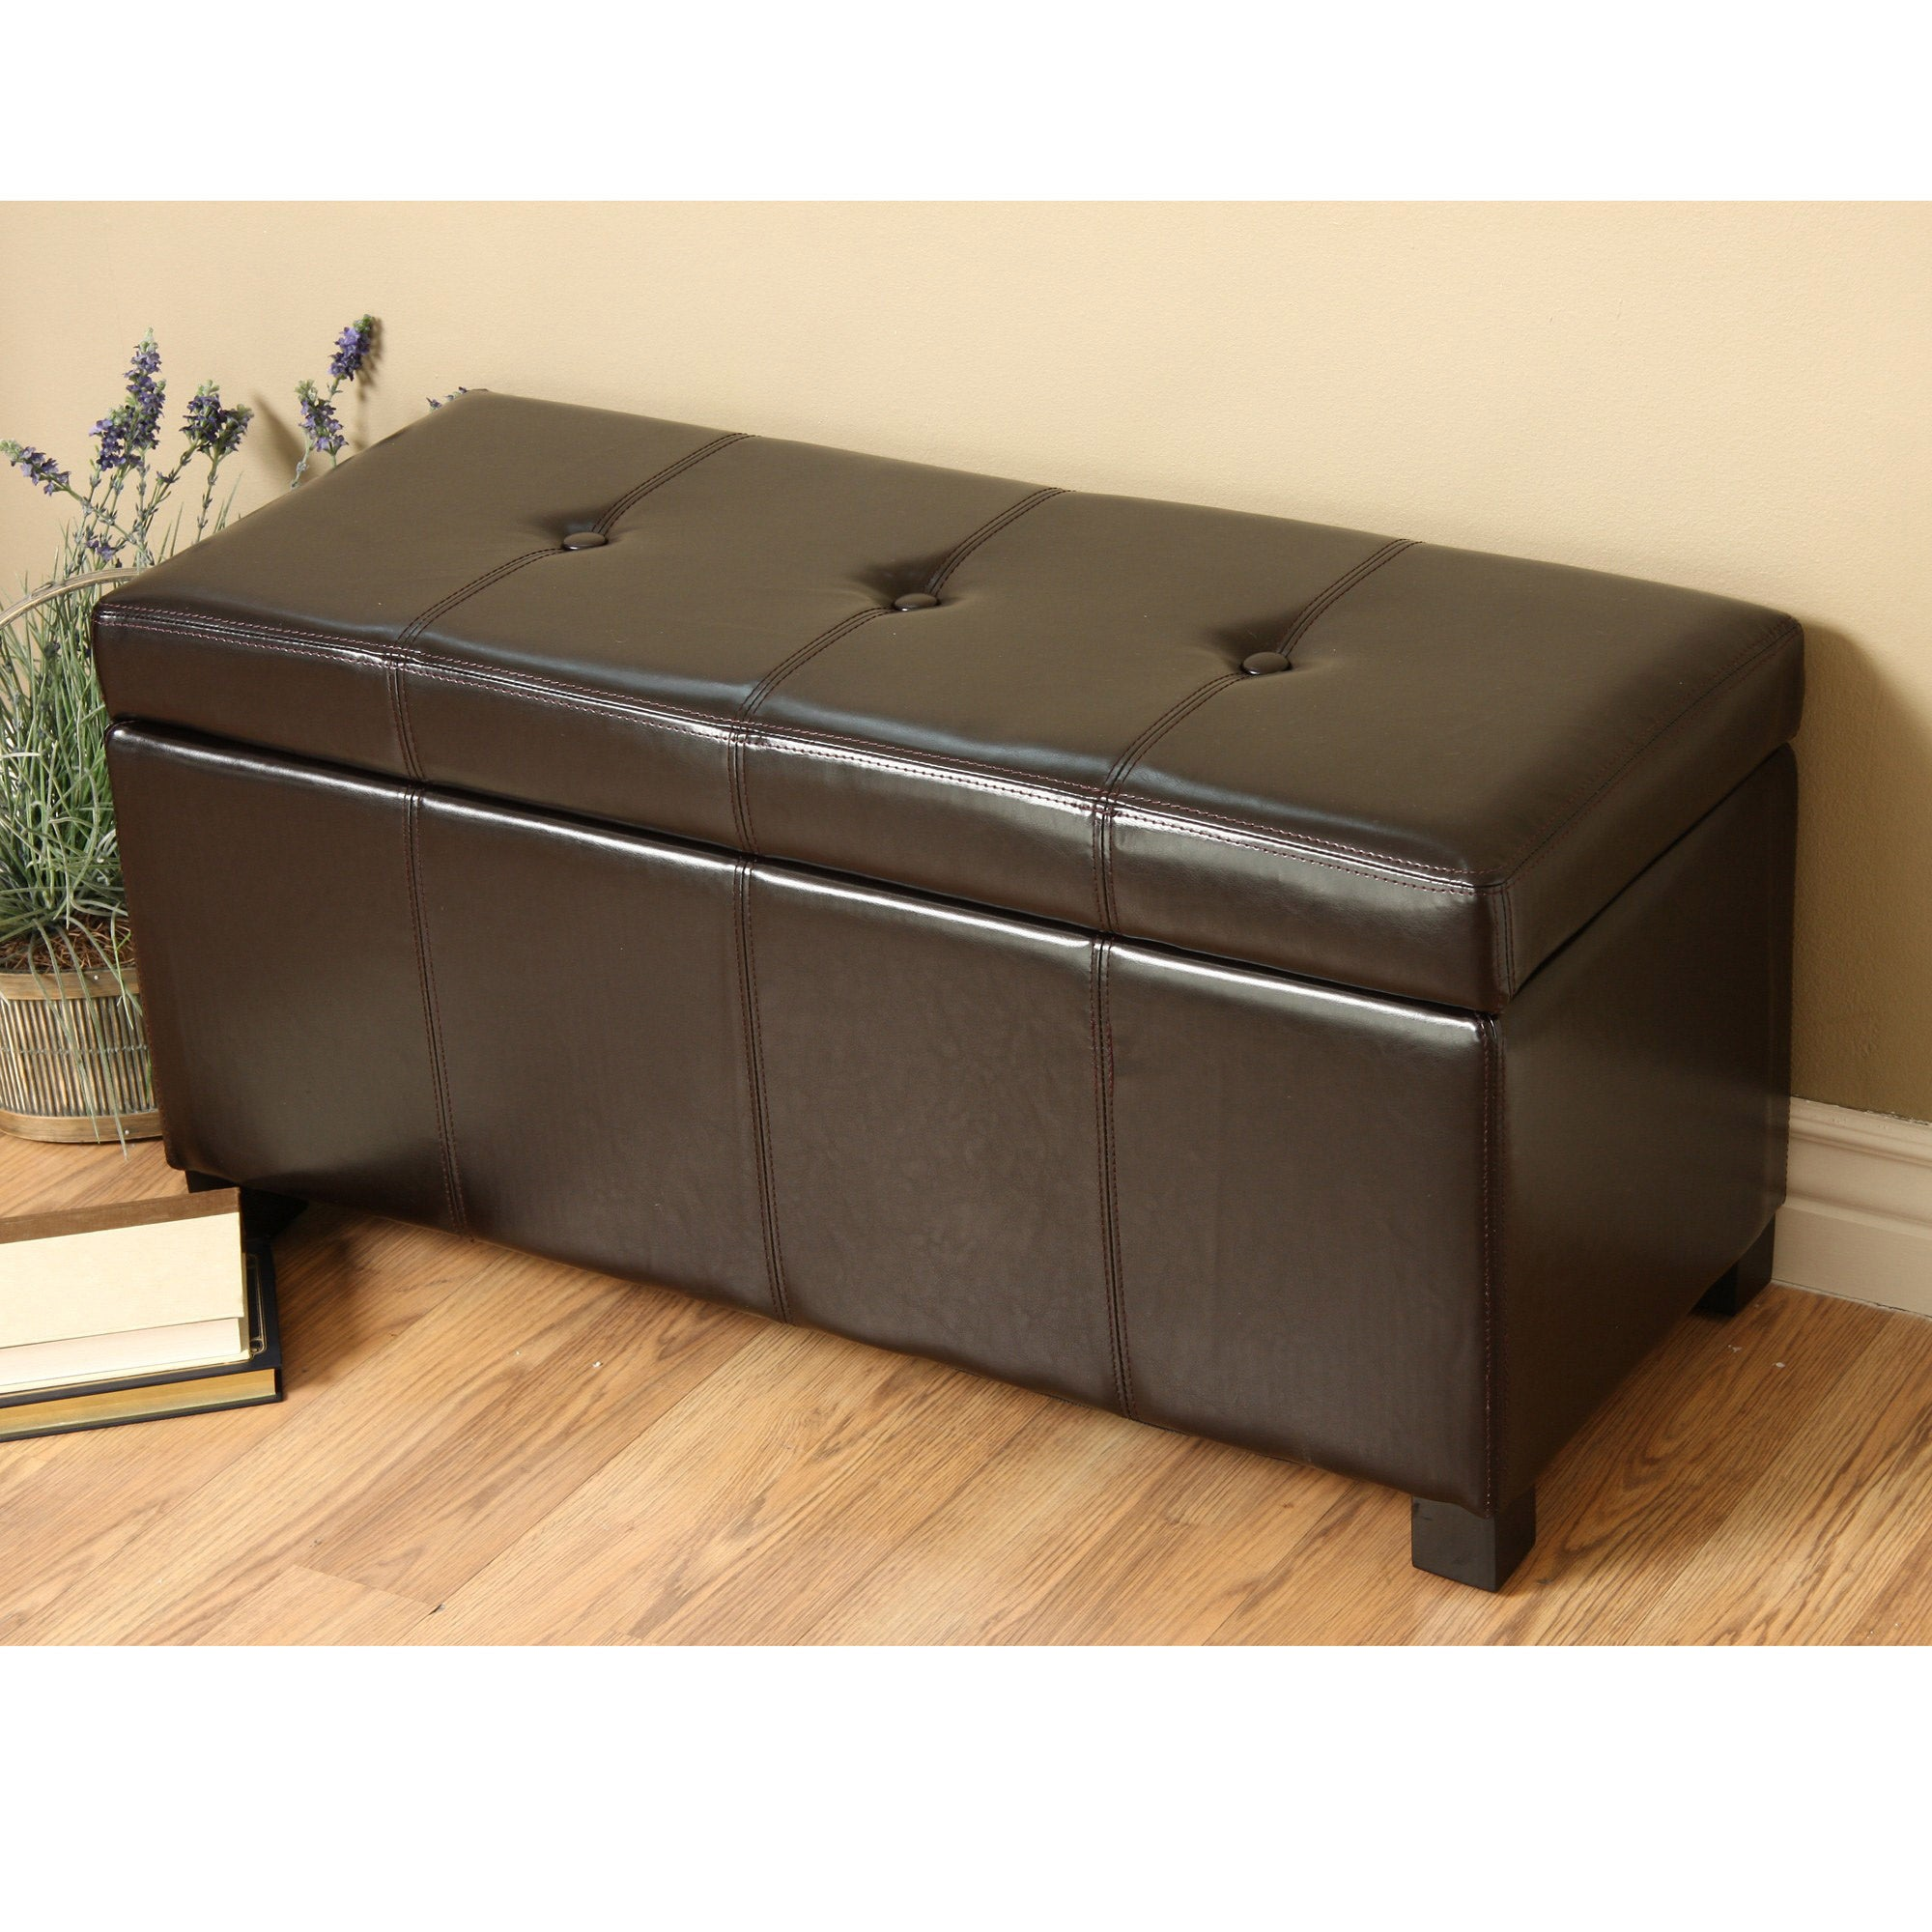 Warehouse Of Tiffany Ariel Dark Brown Faux Leather Storage Bench Overstock 6312986 Brown